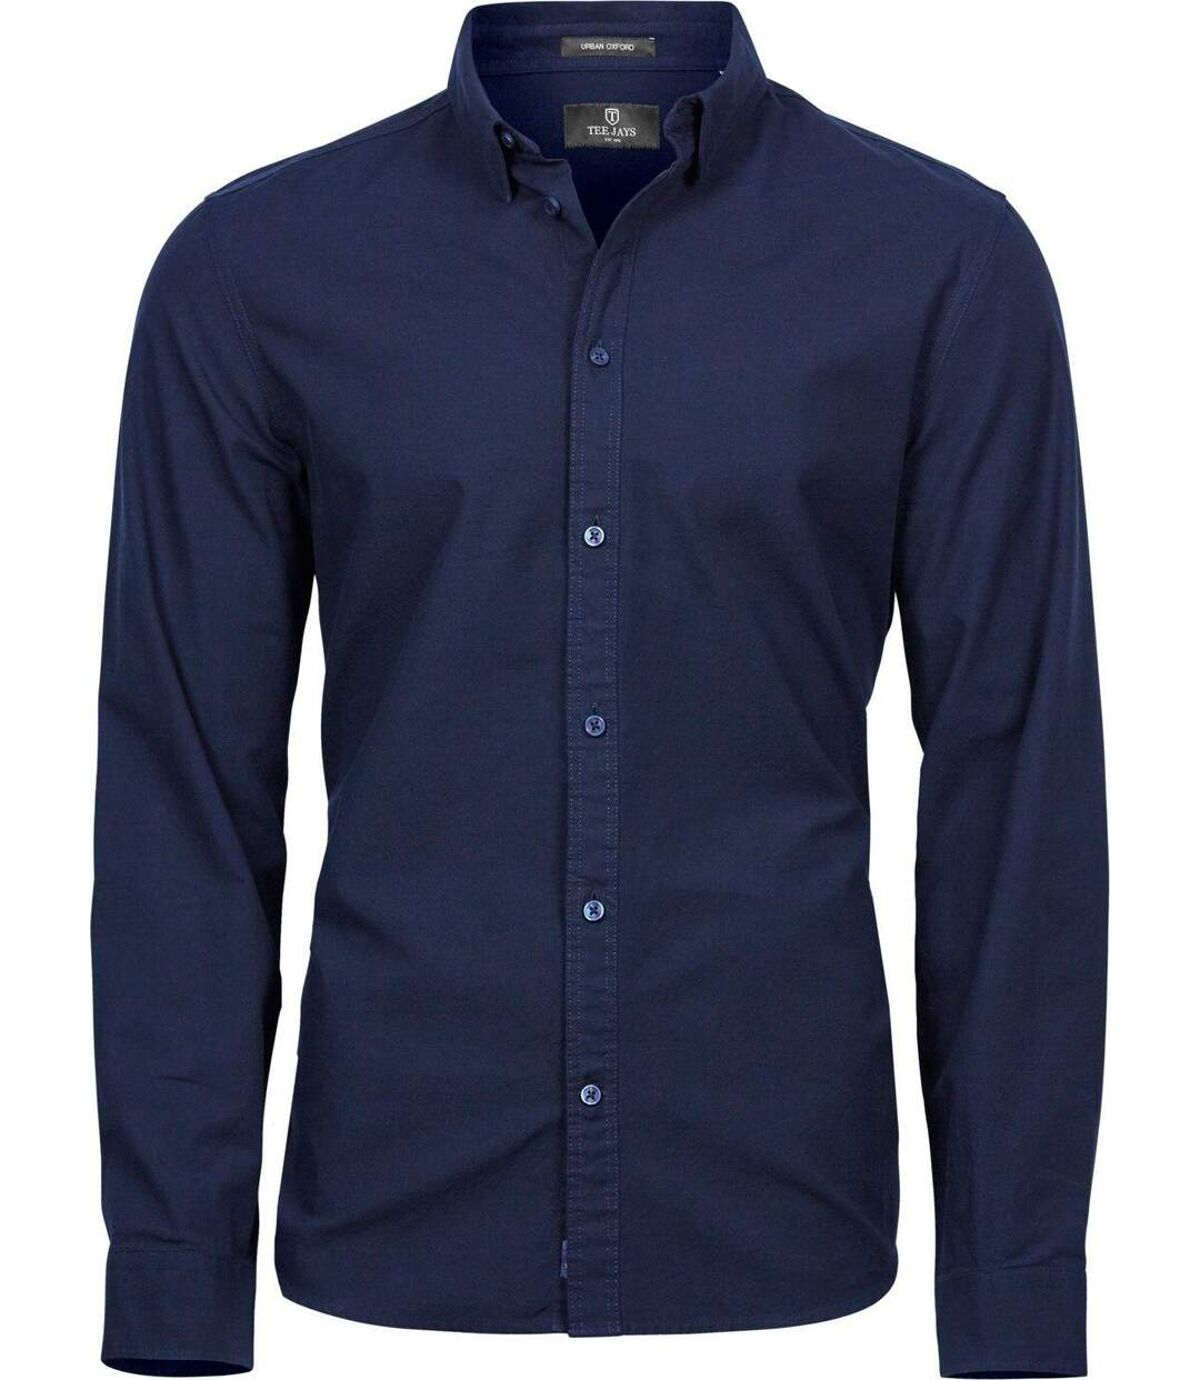 Chemise homme Casual Oxford - 4010 - bleu marine - manches longues